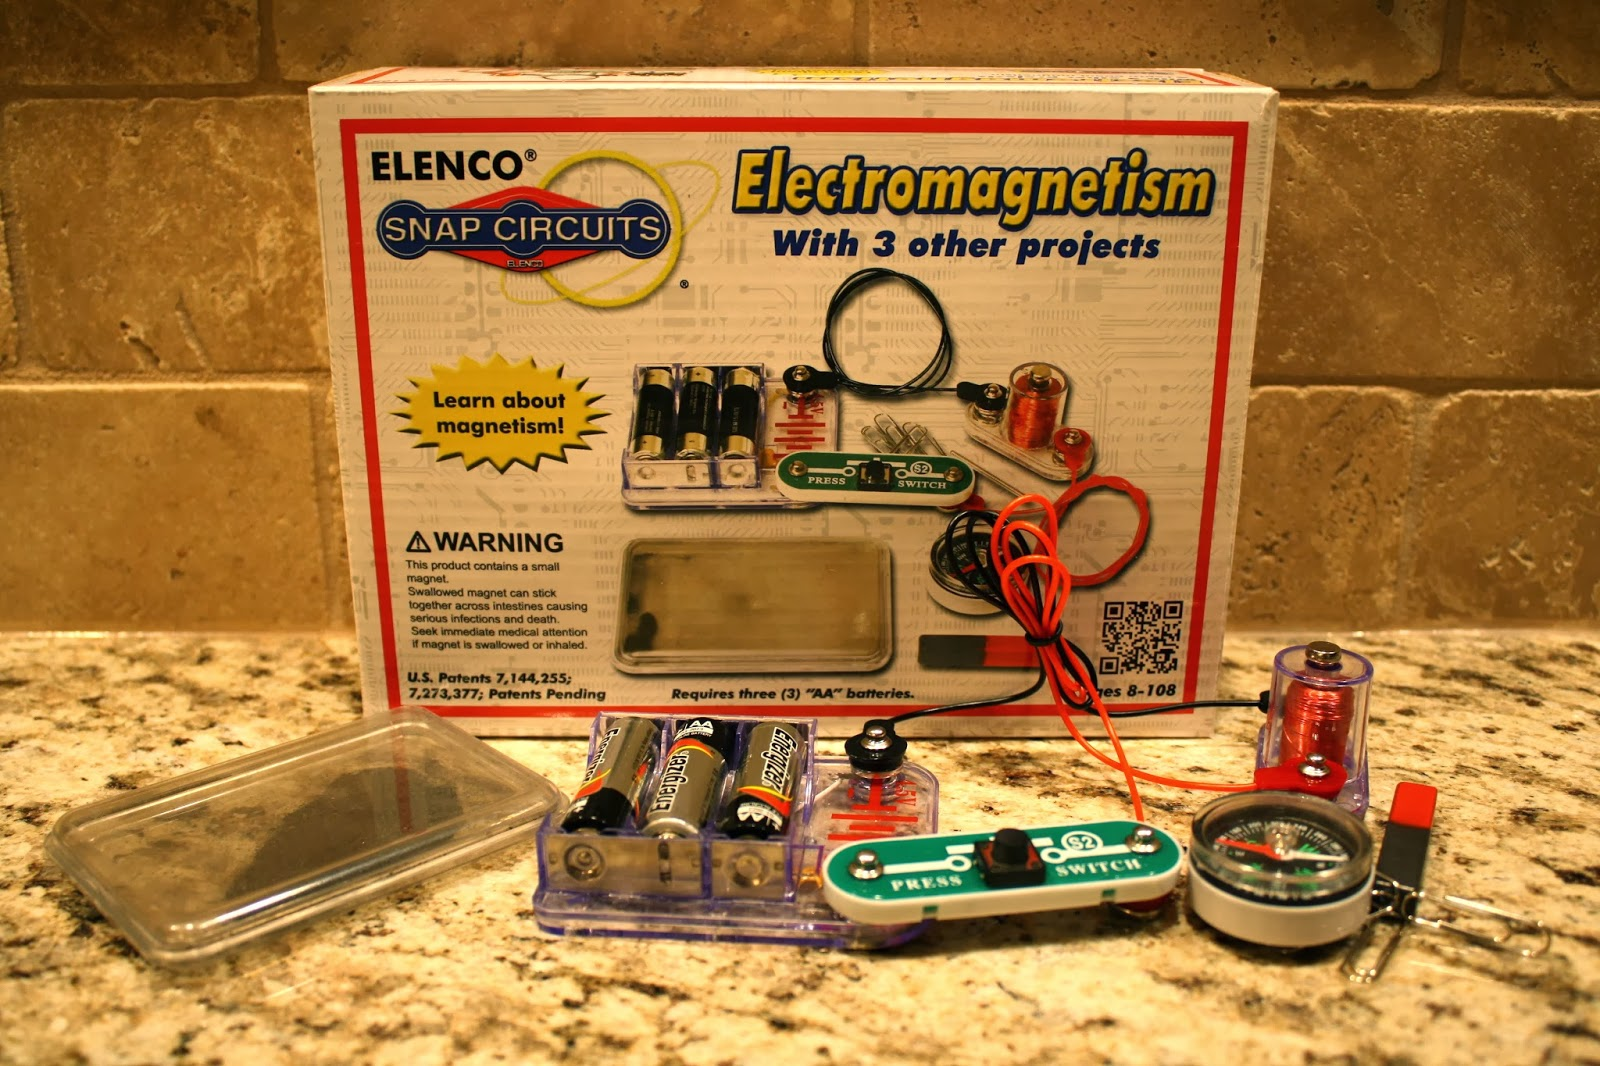 Ideas For Classically Catholic Memory Gamma Year Week 12 Elenco Snap Circuits Electromagnetism Walmartcom Math